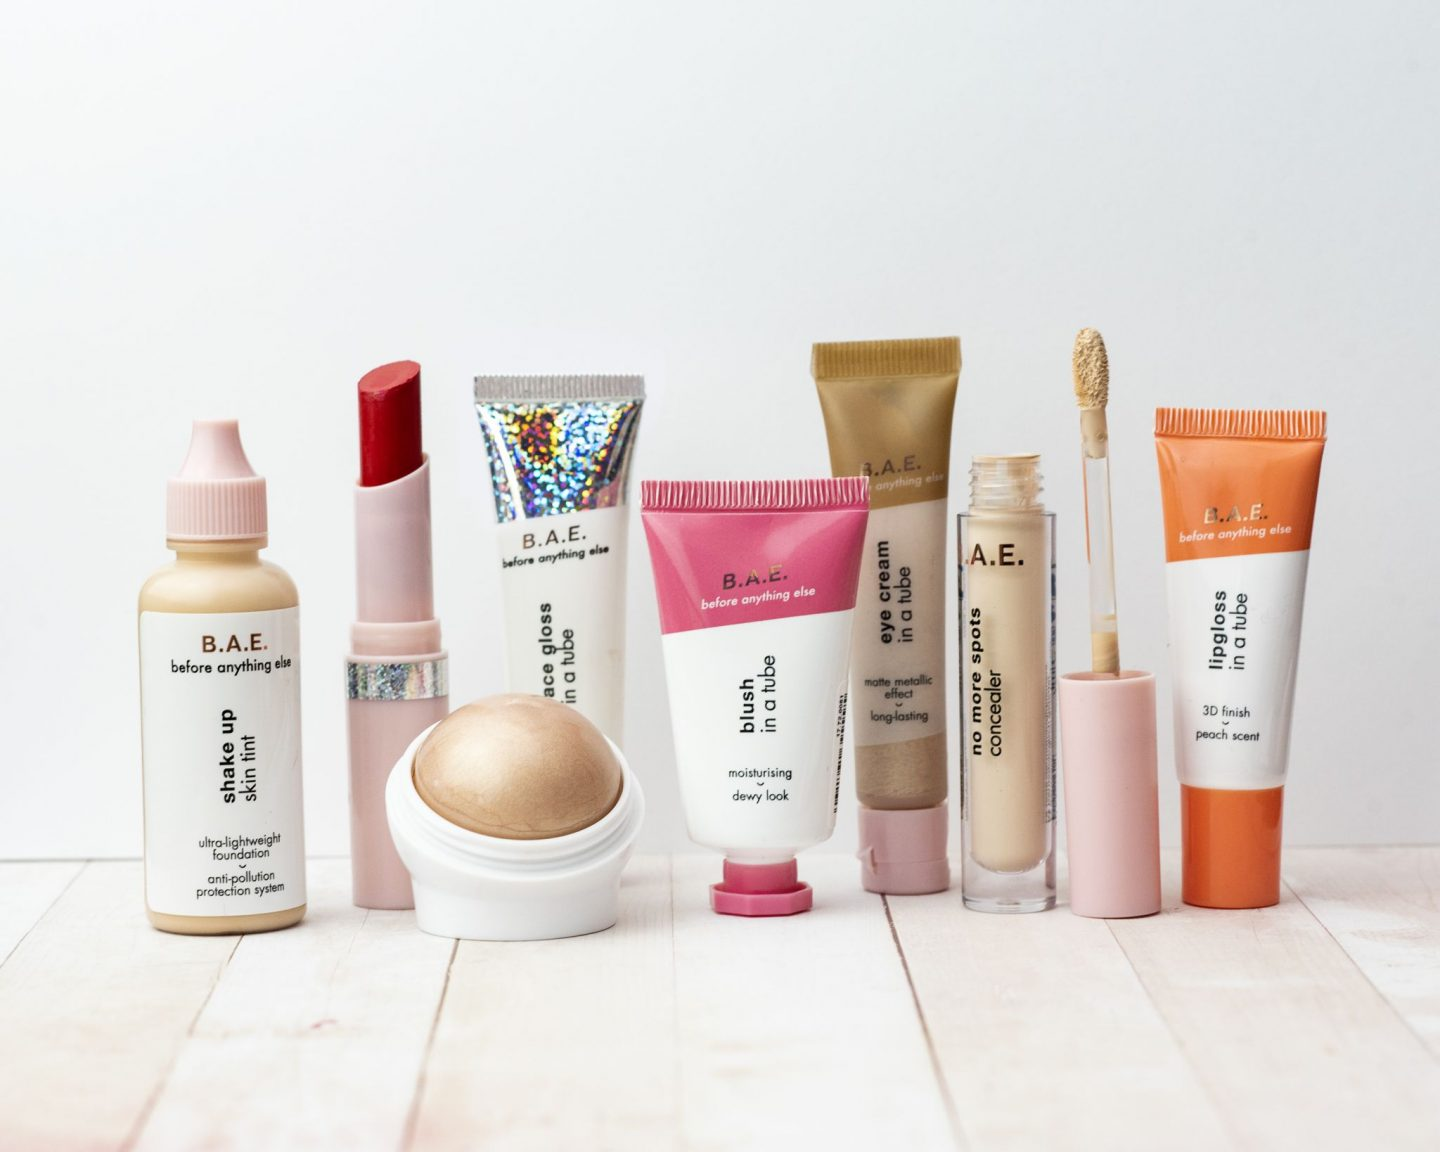 Glossier Dupes: Review of B.A.E. by HEMA